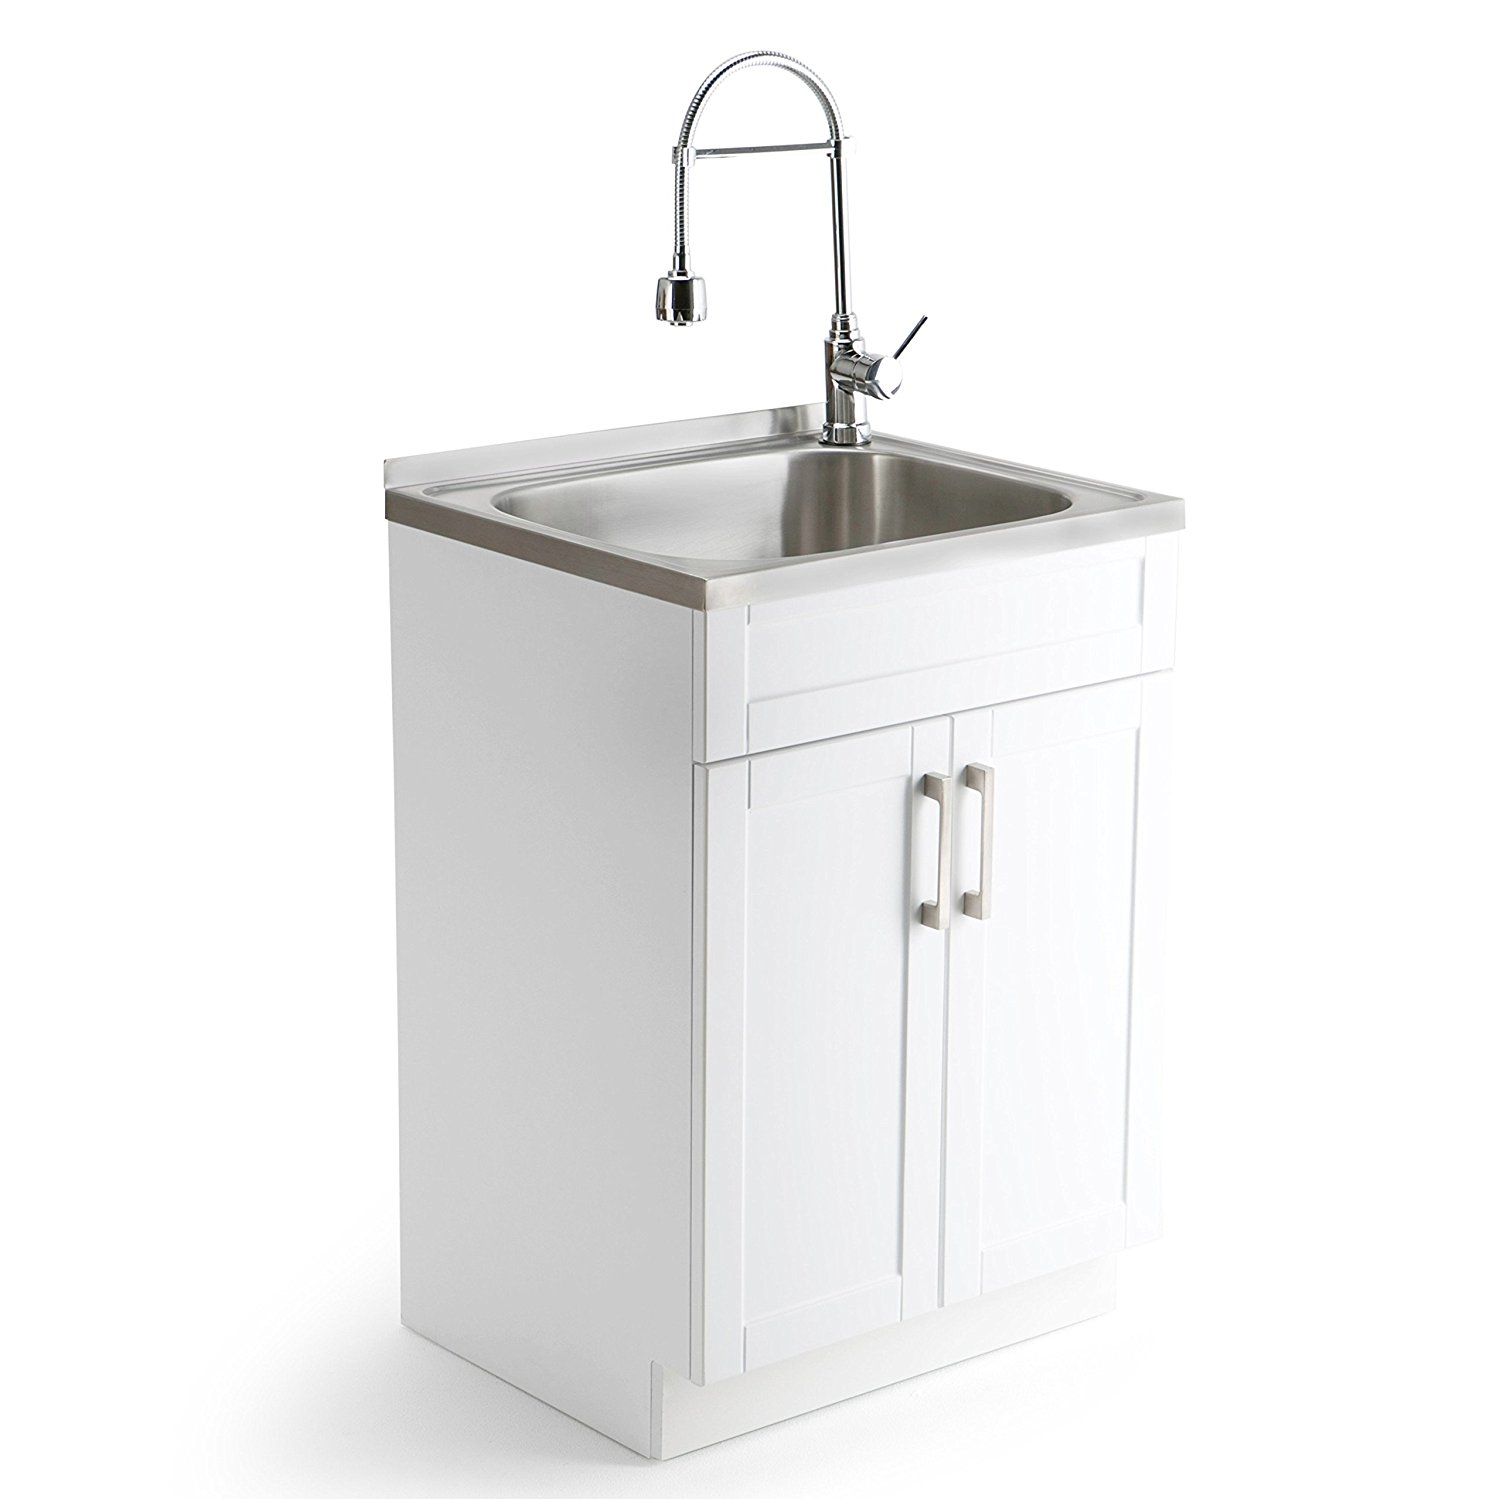 Simpli Home Hennessy Laundry Cabinet with Faucet and Stai...